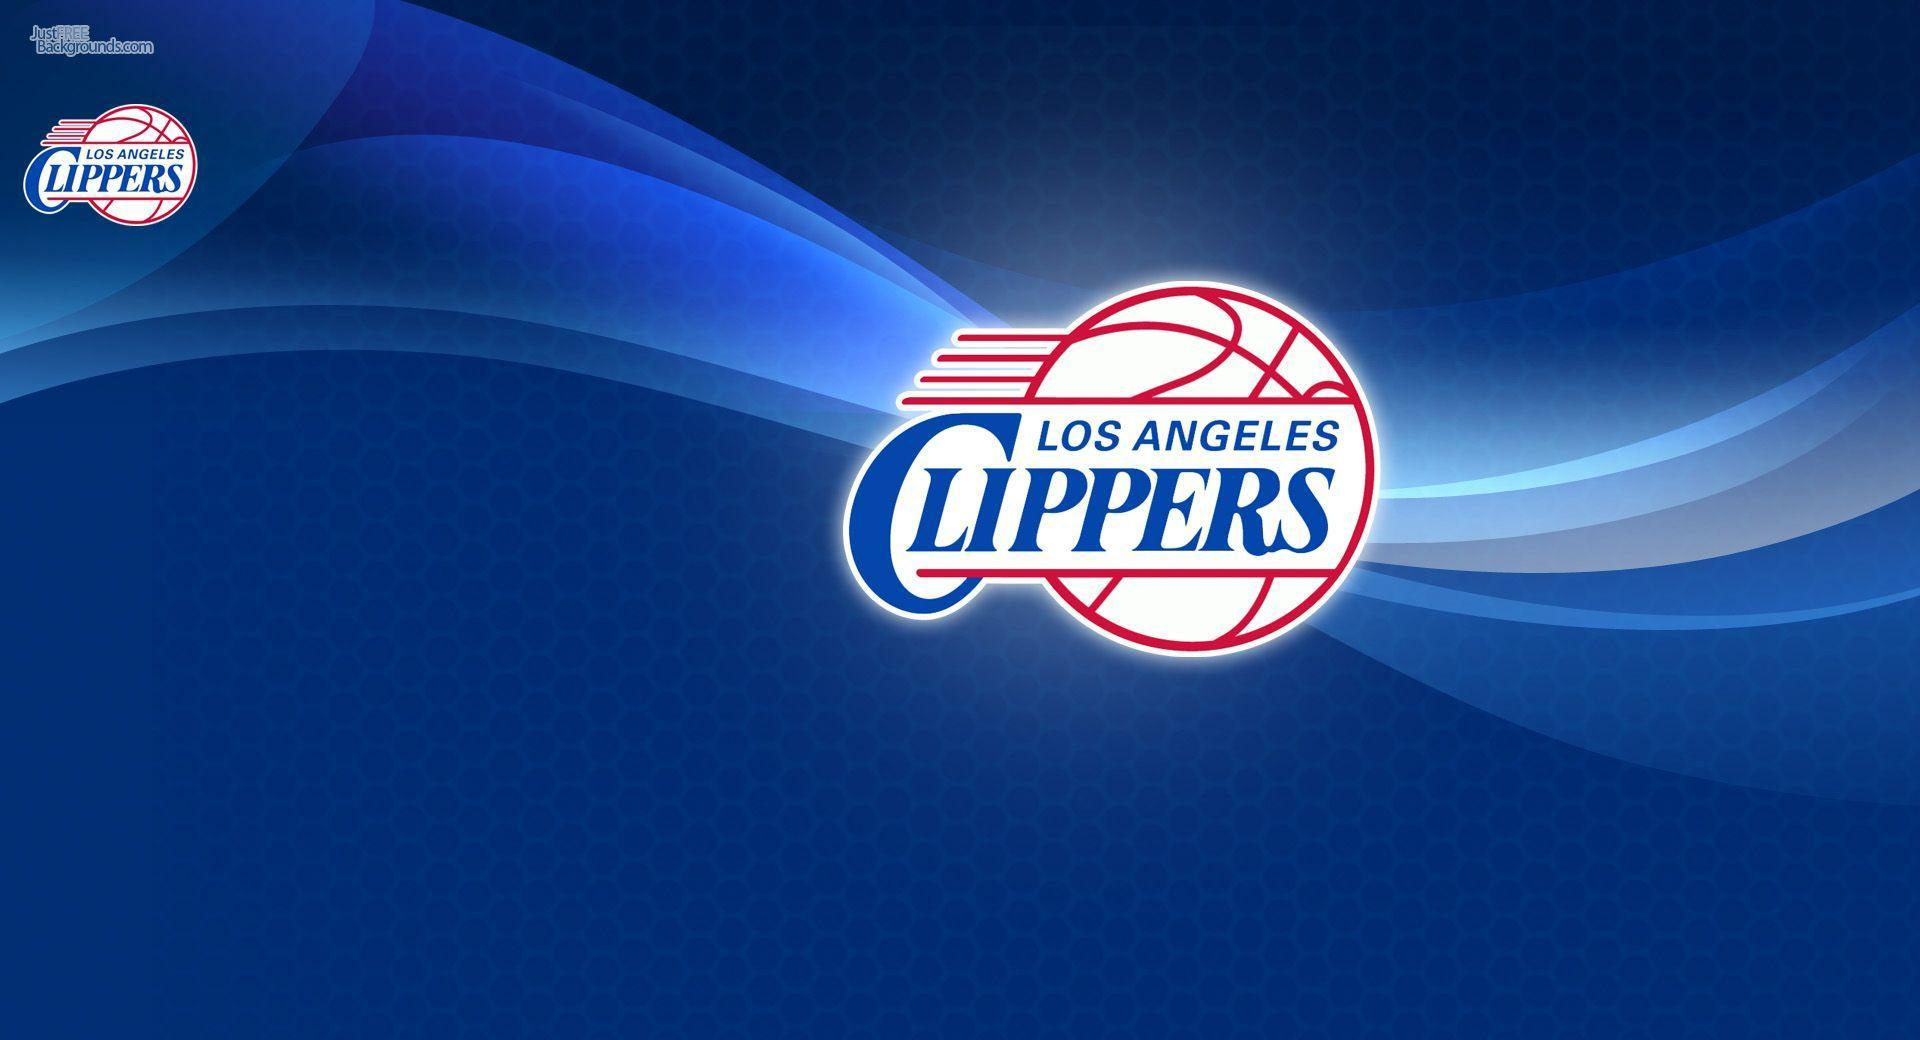 Logos, Wallpapers and Los angeles clippers